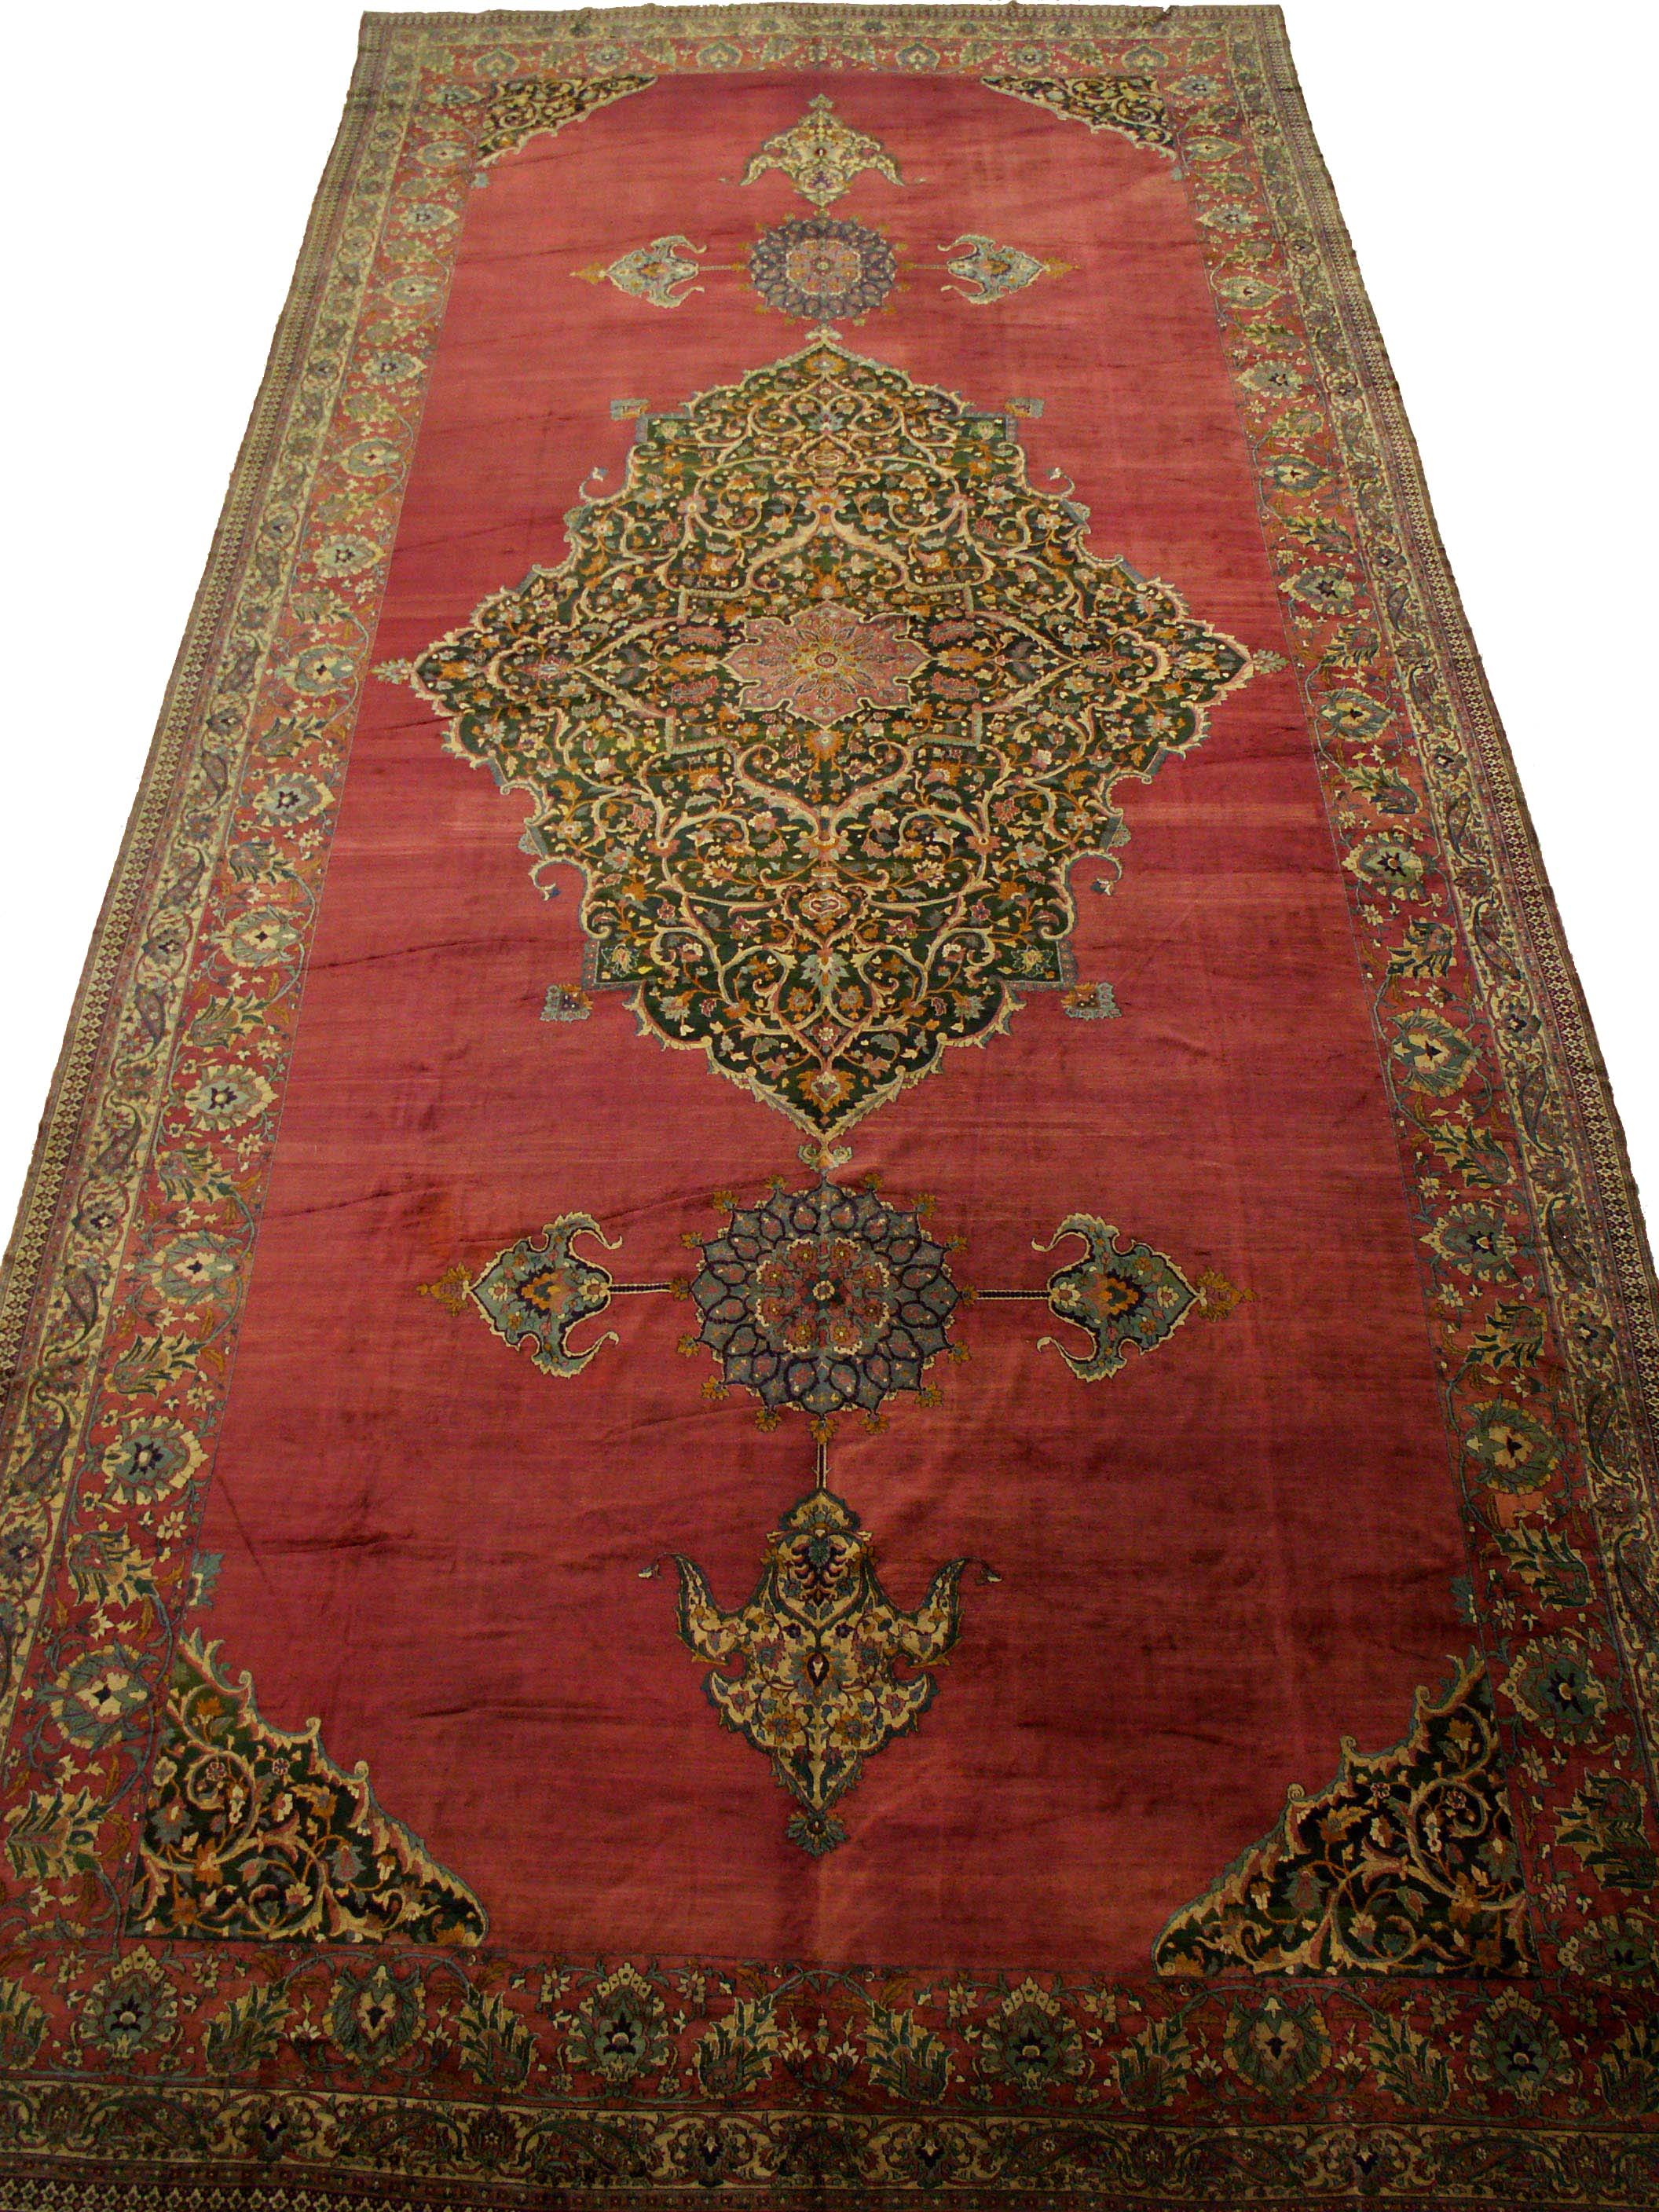 Large Antique Palace Rug 28407